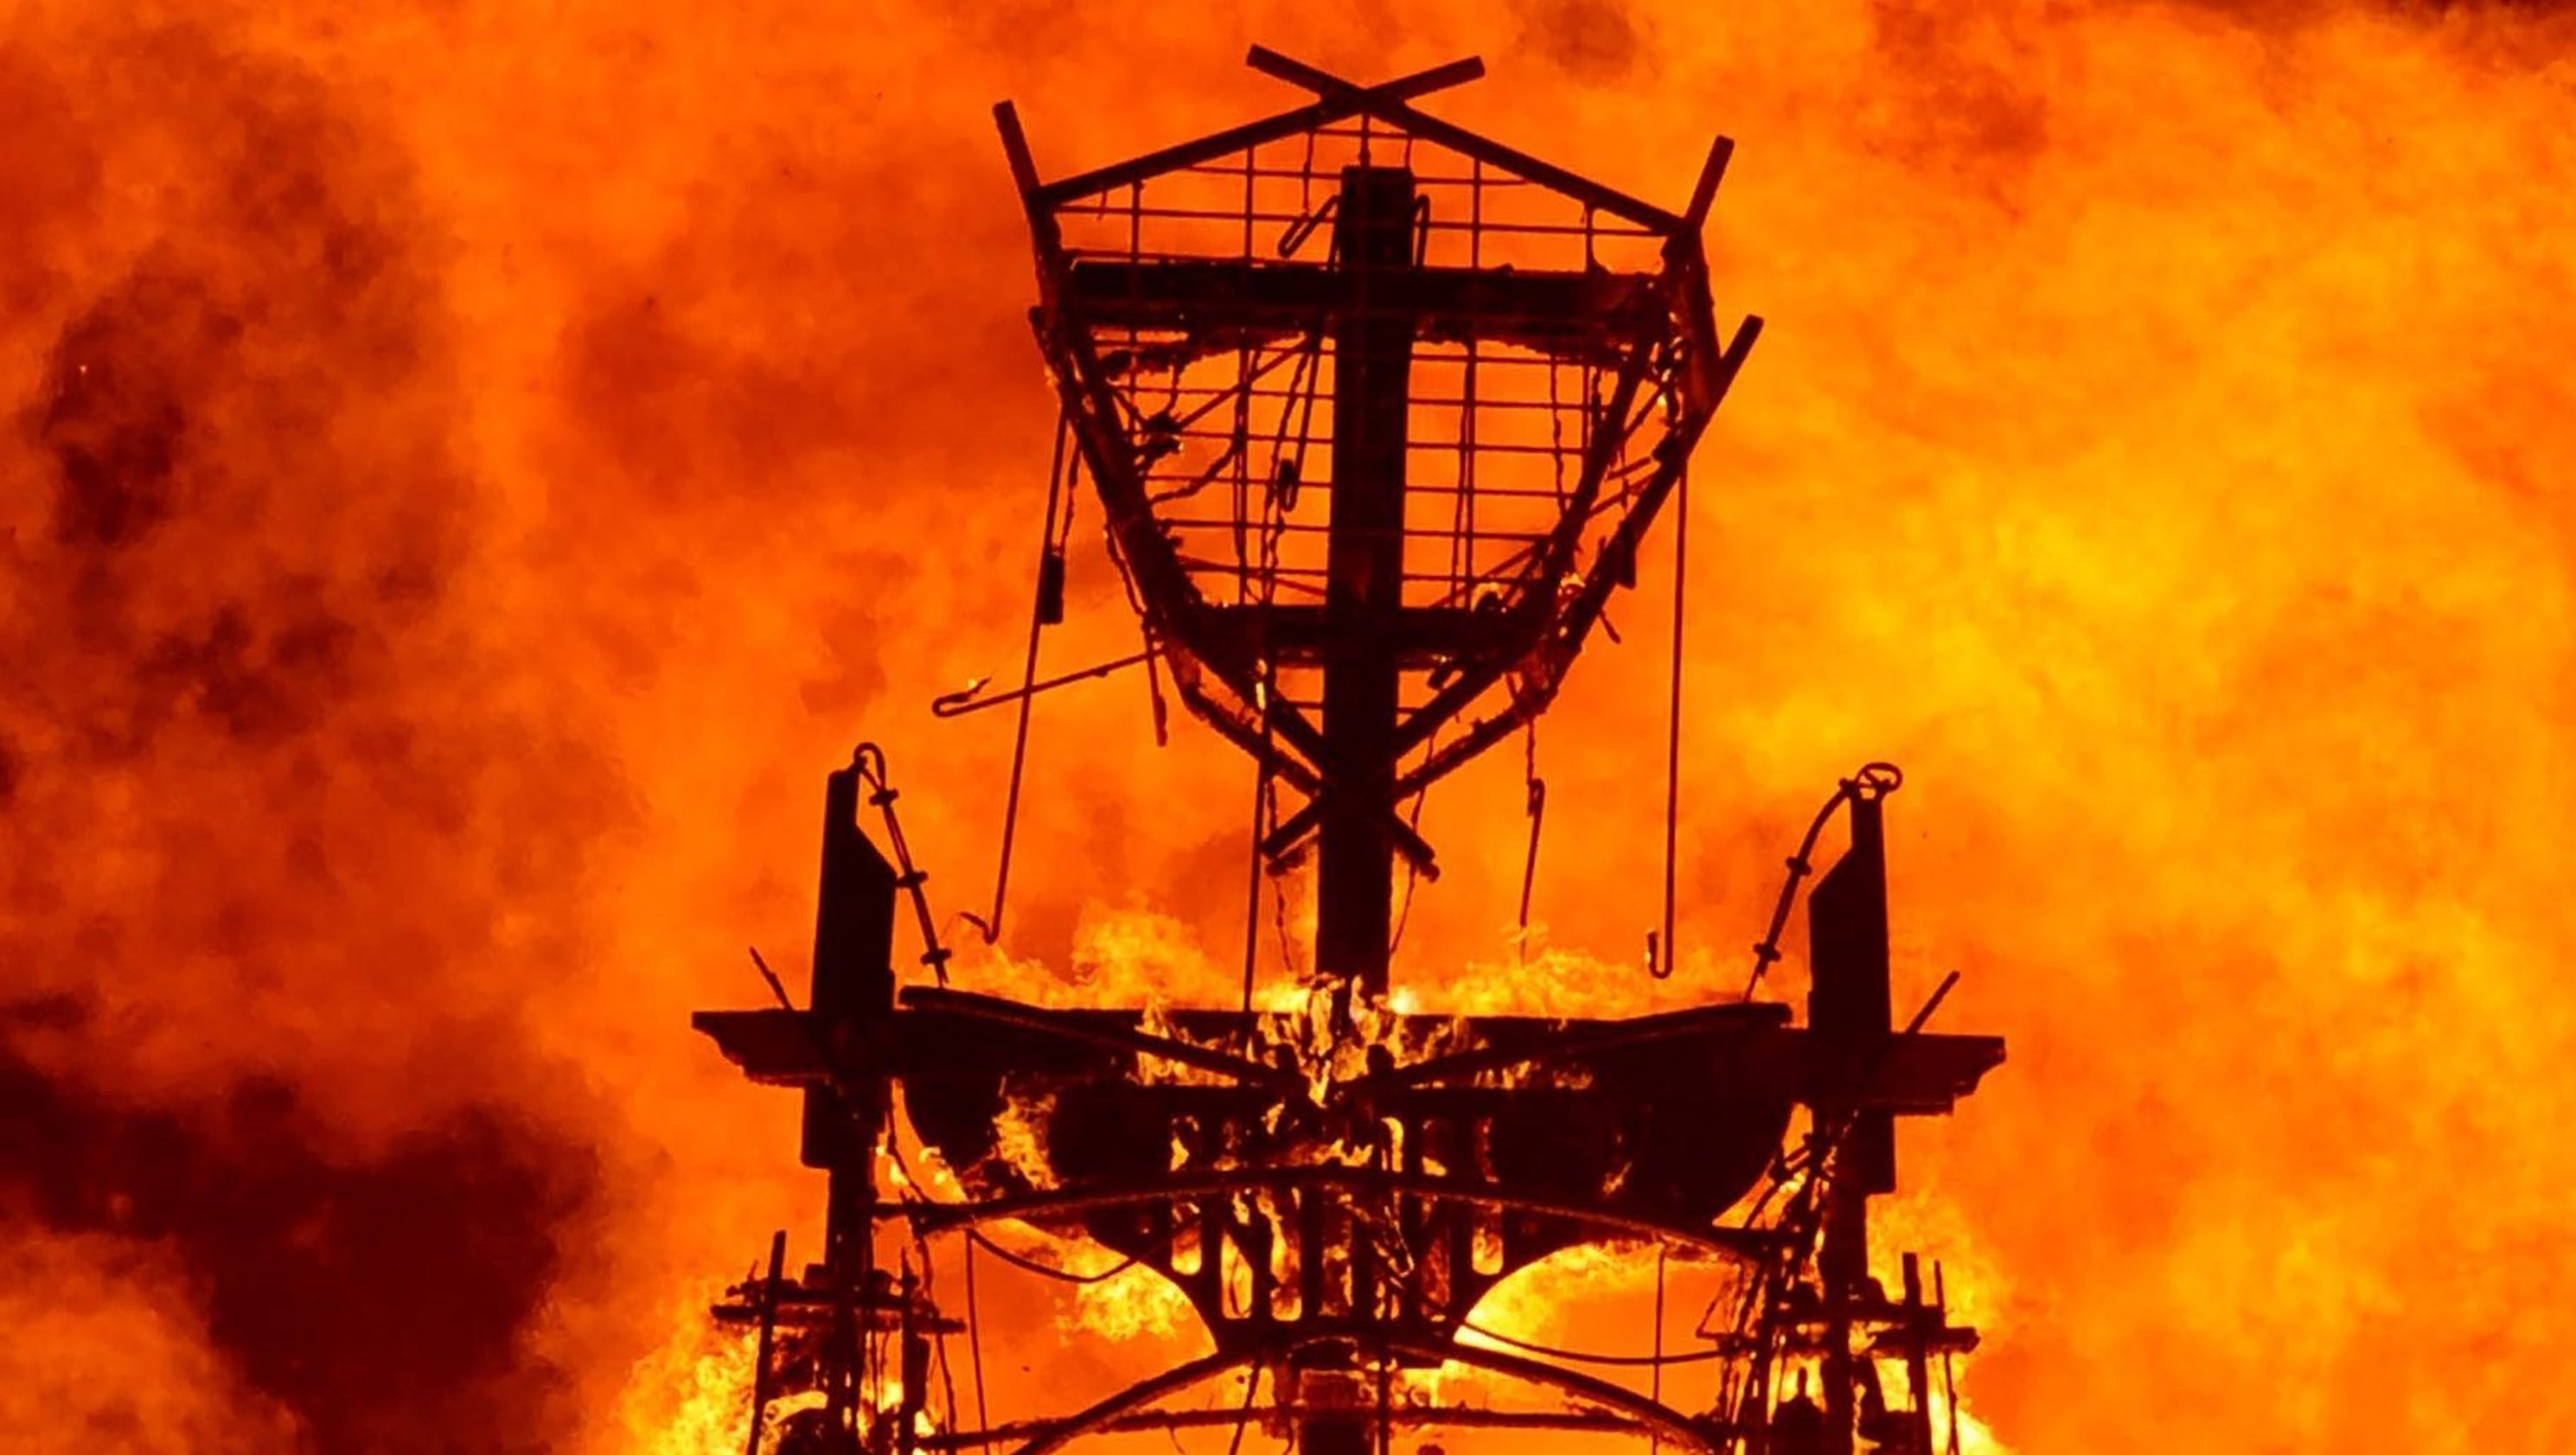 BURNING MAN sells out in half hour